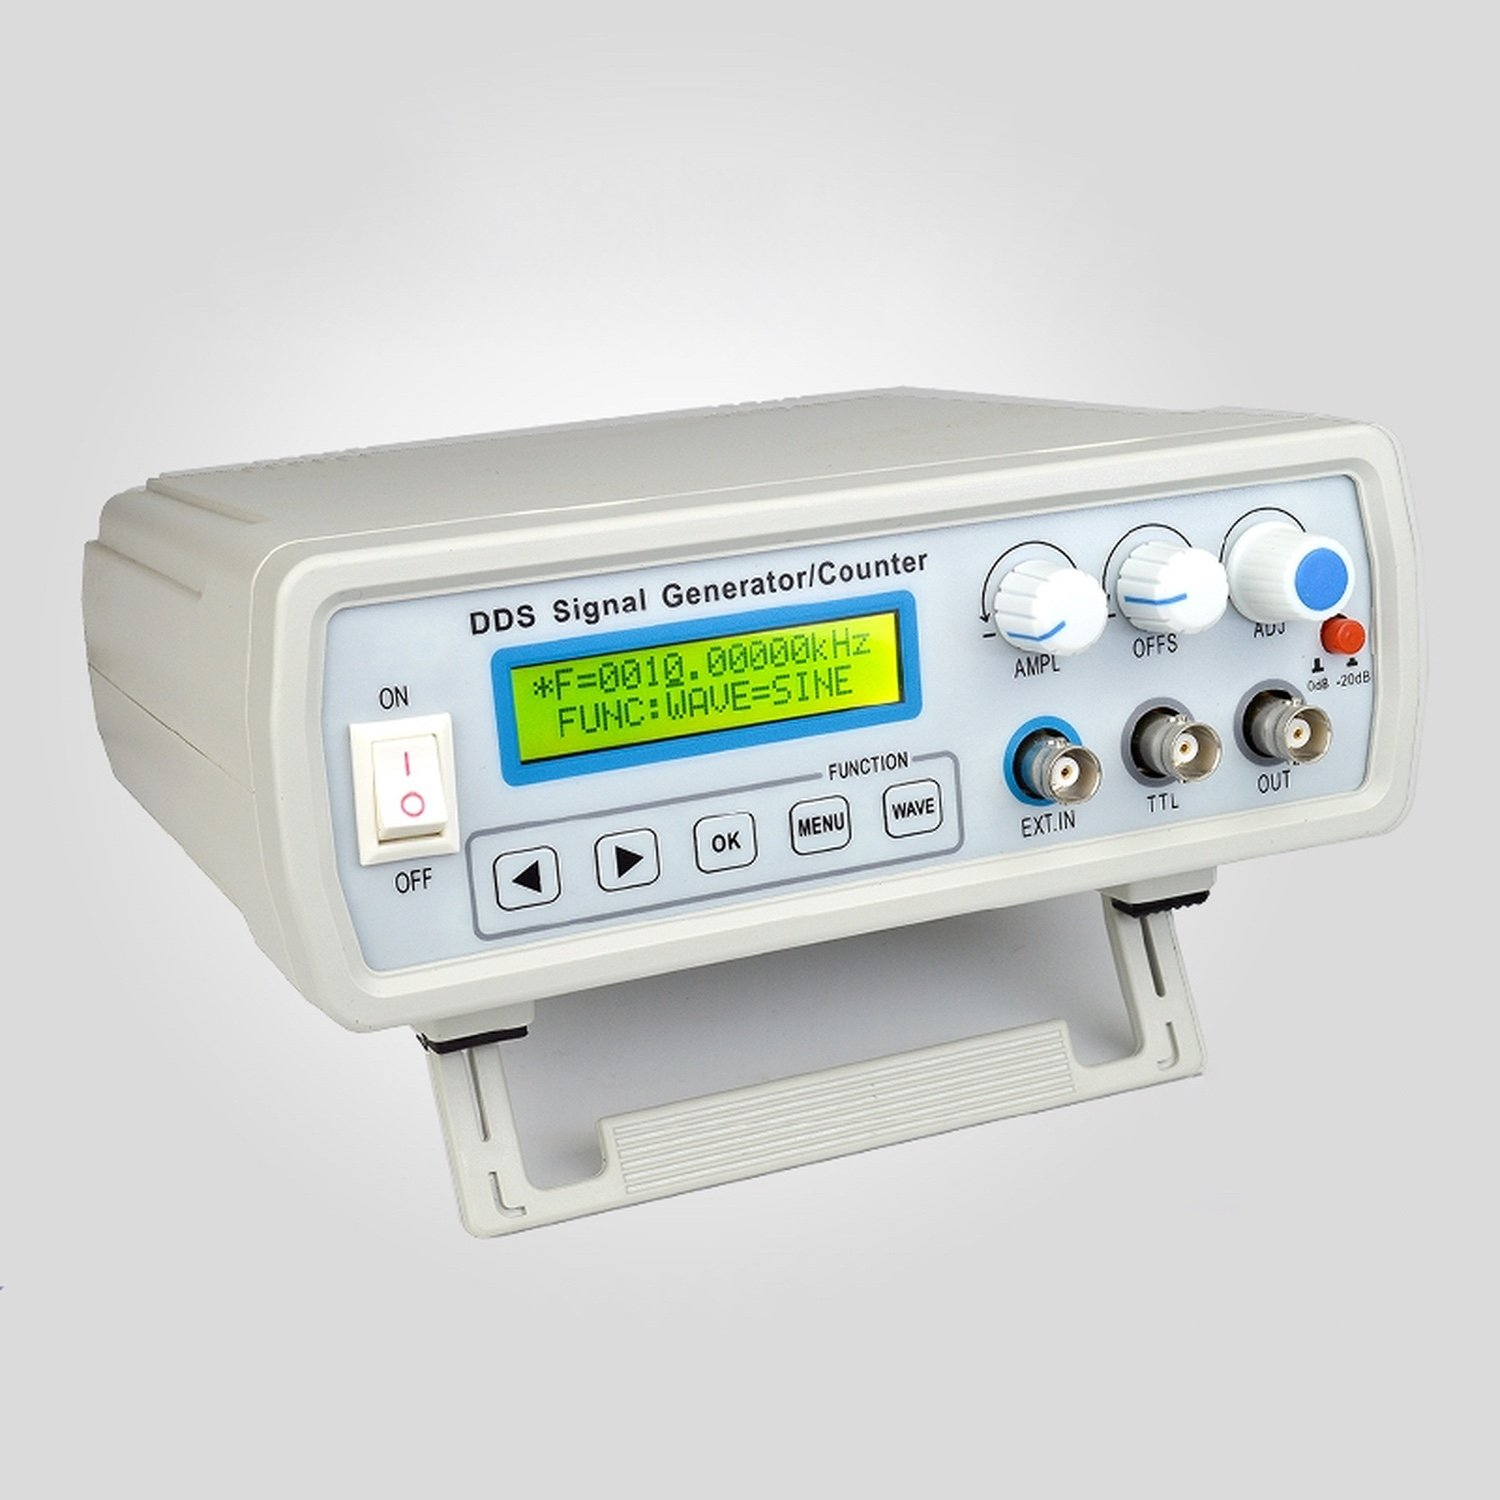 FY2112S Direct Digital Synthesis (DDS) Signal Generator 5Mhz and frequency counter 60mhz with USB with fy1000s function signal generator dds signal source 60mhz frequency counter dual ttl output